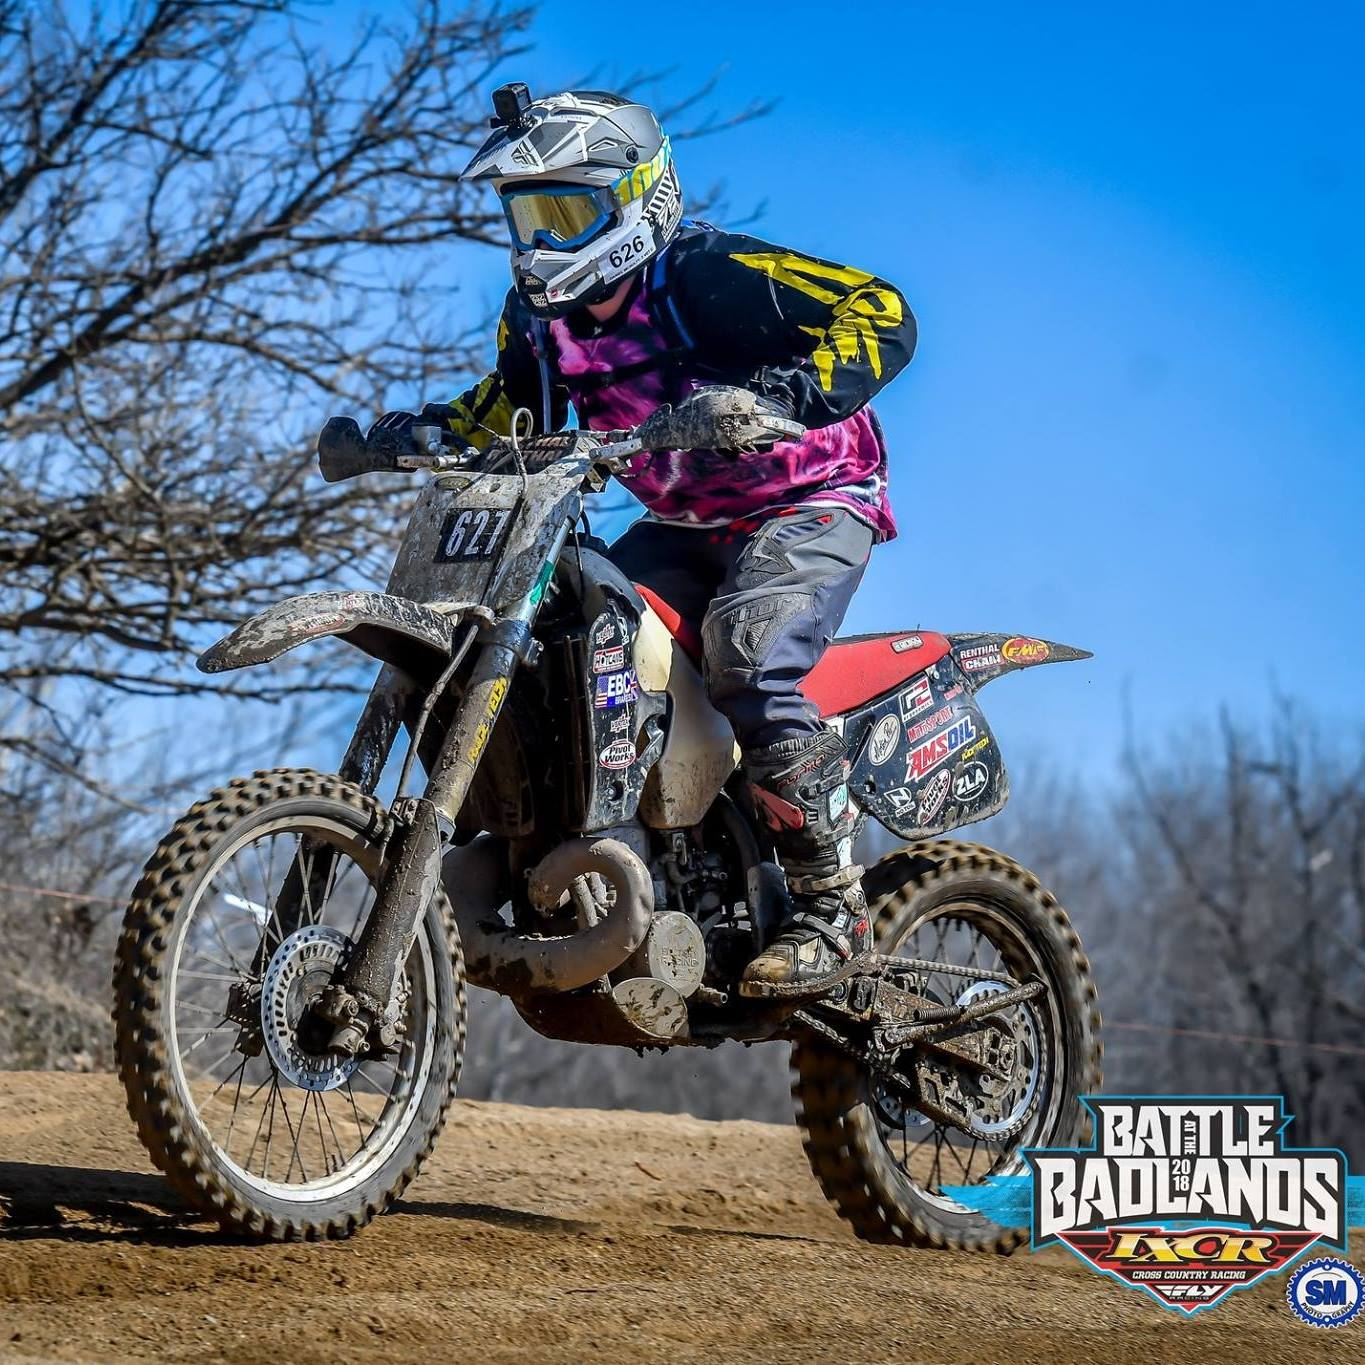 Photo of Daniel racing on a 2-stroke dirtbike